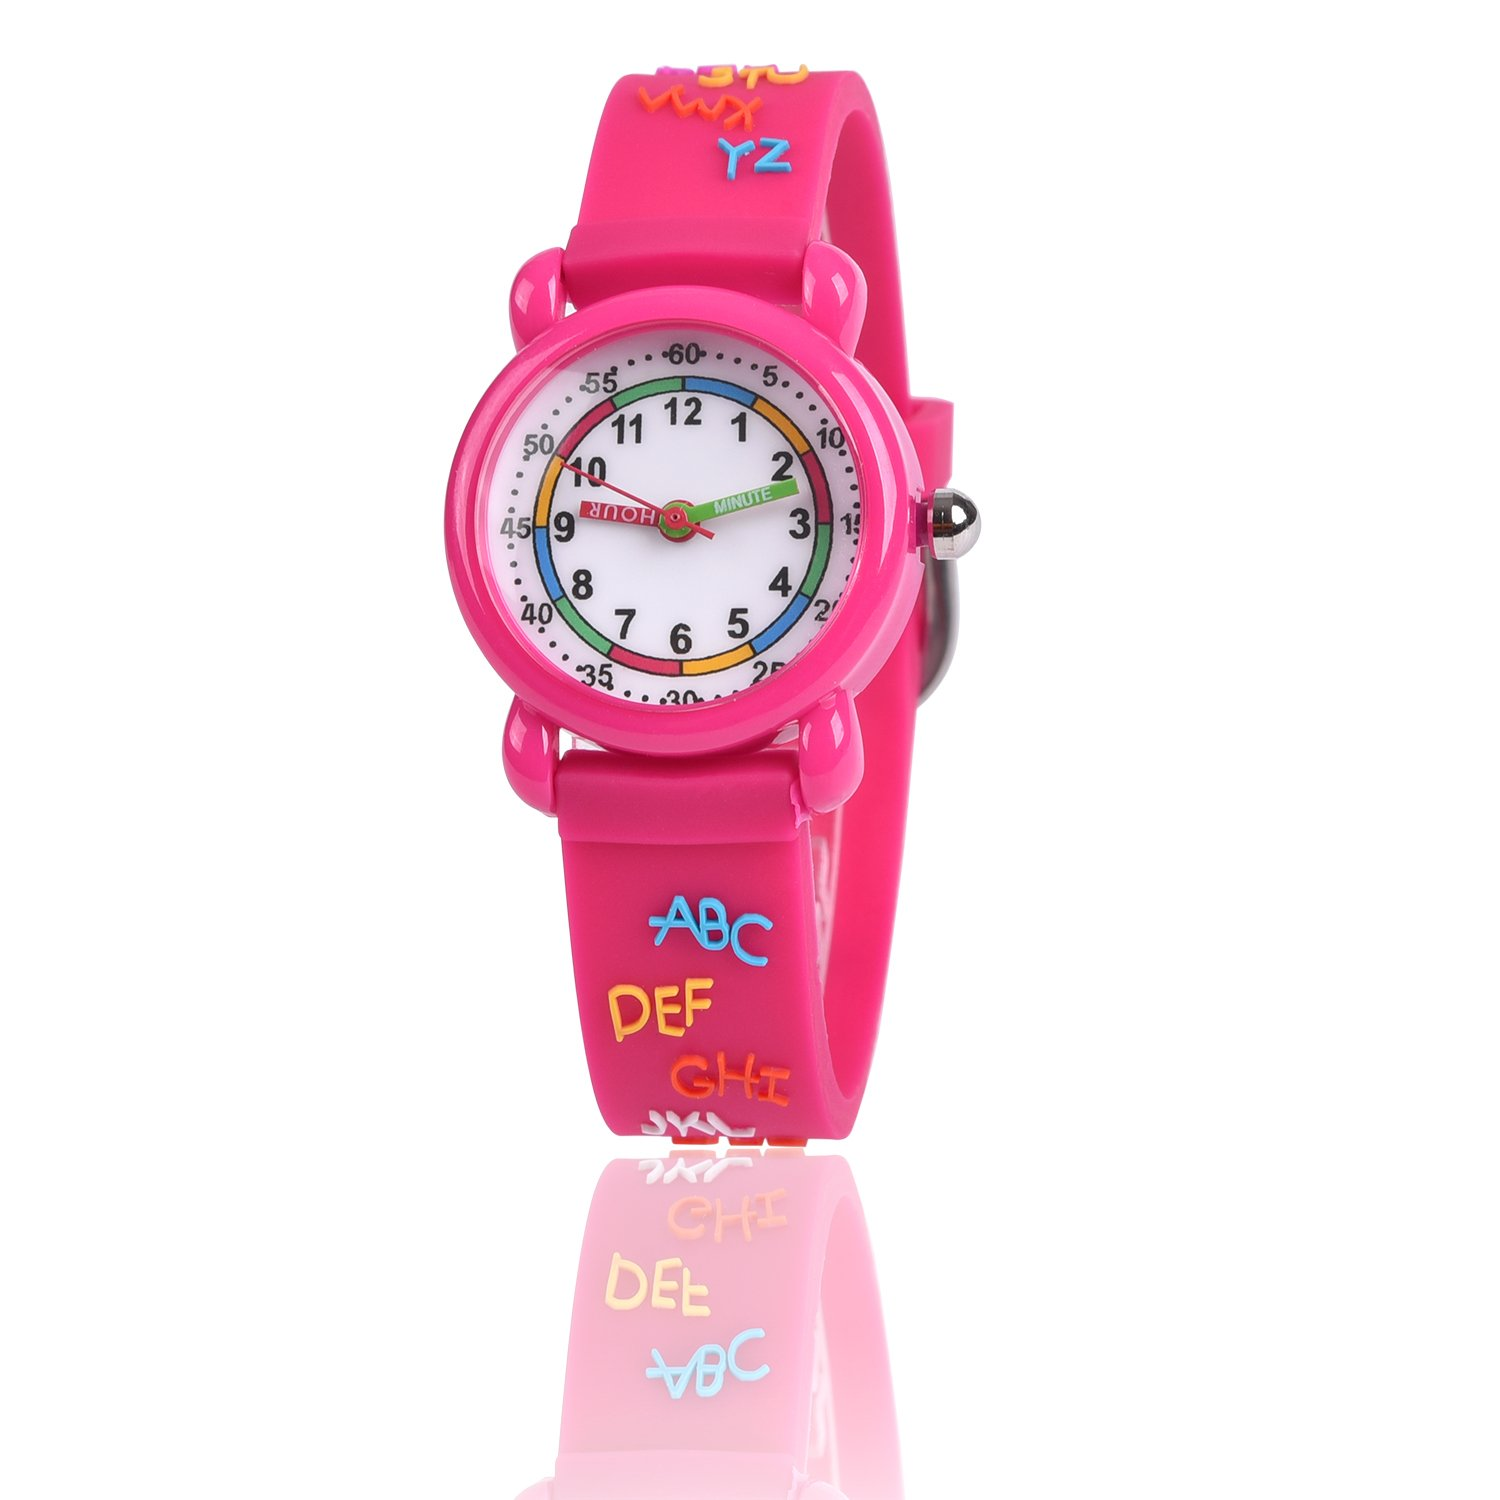 Gifts for 3-10 Year Old Girls Boy, 3D Kids Watch Toy for 4-11 Year ...